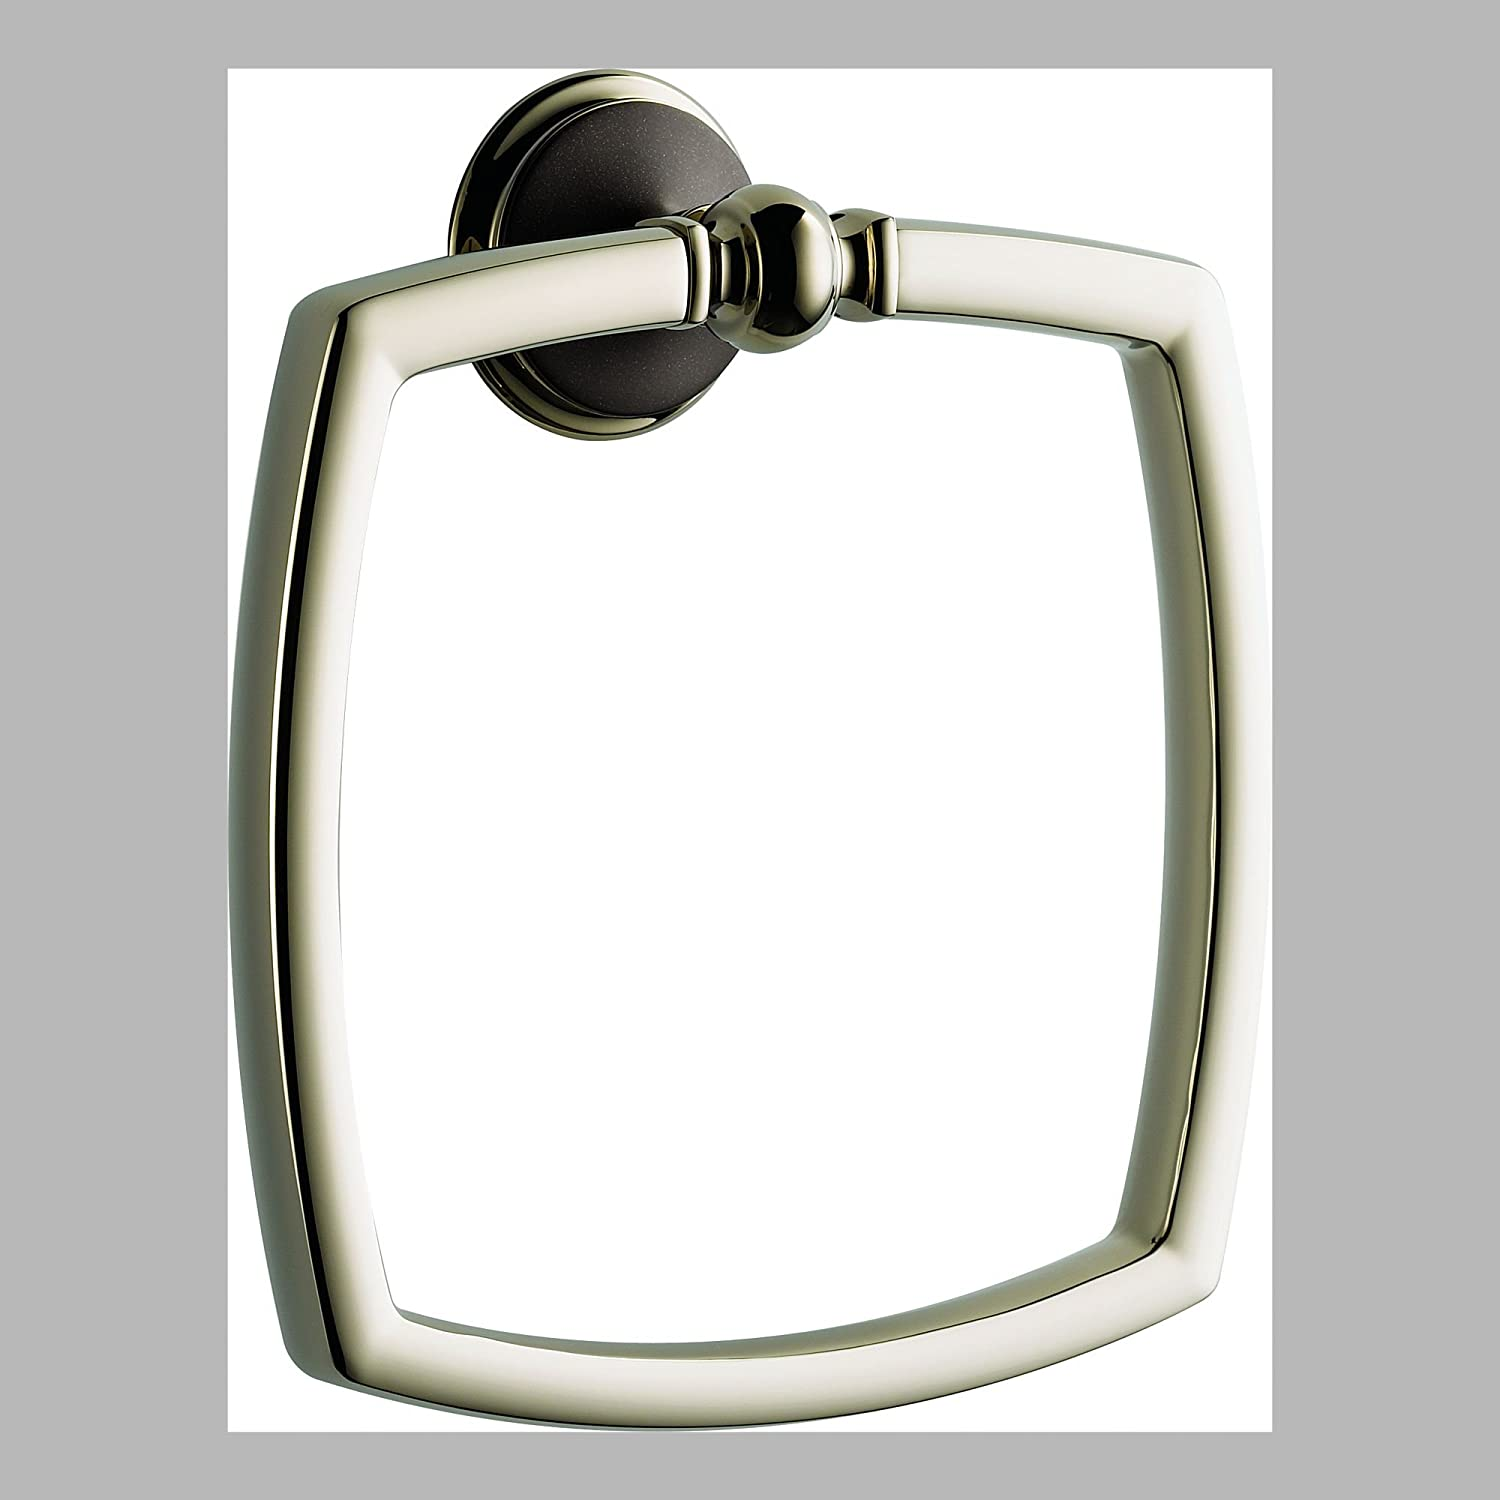 good Brizo 694685 Towel Ring from the Charlotte Collection, Cocoa Bronze and Polished Nickel